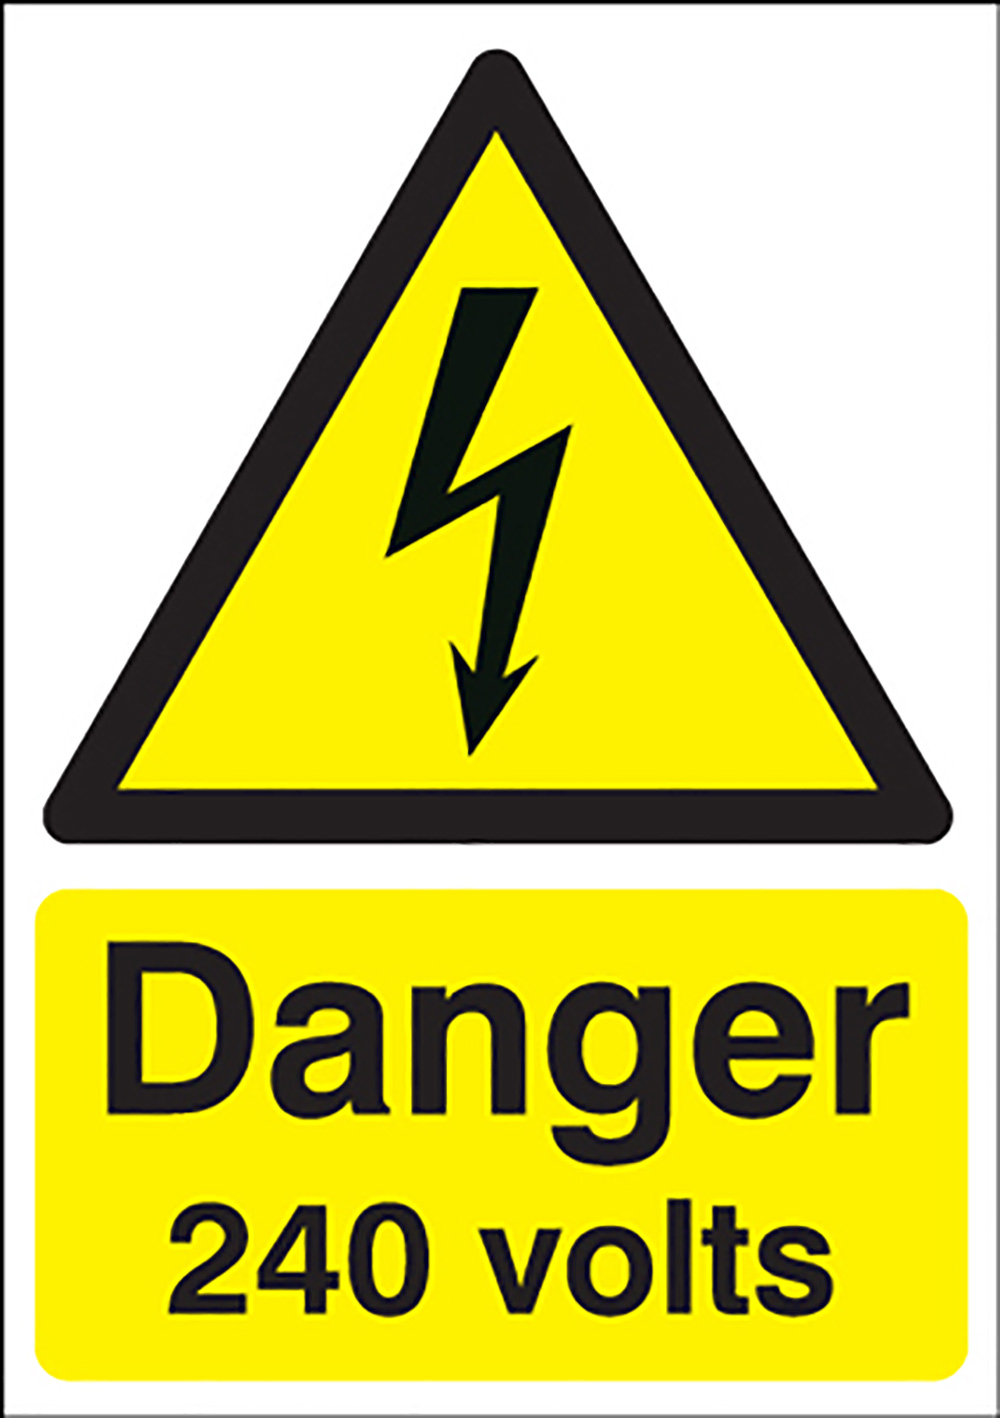 Danger 240 Volts   210x148mm 1.2mm Rigid Plastic Safety Sign